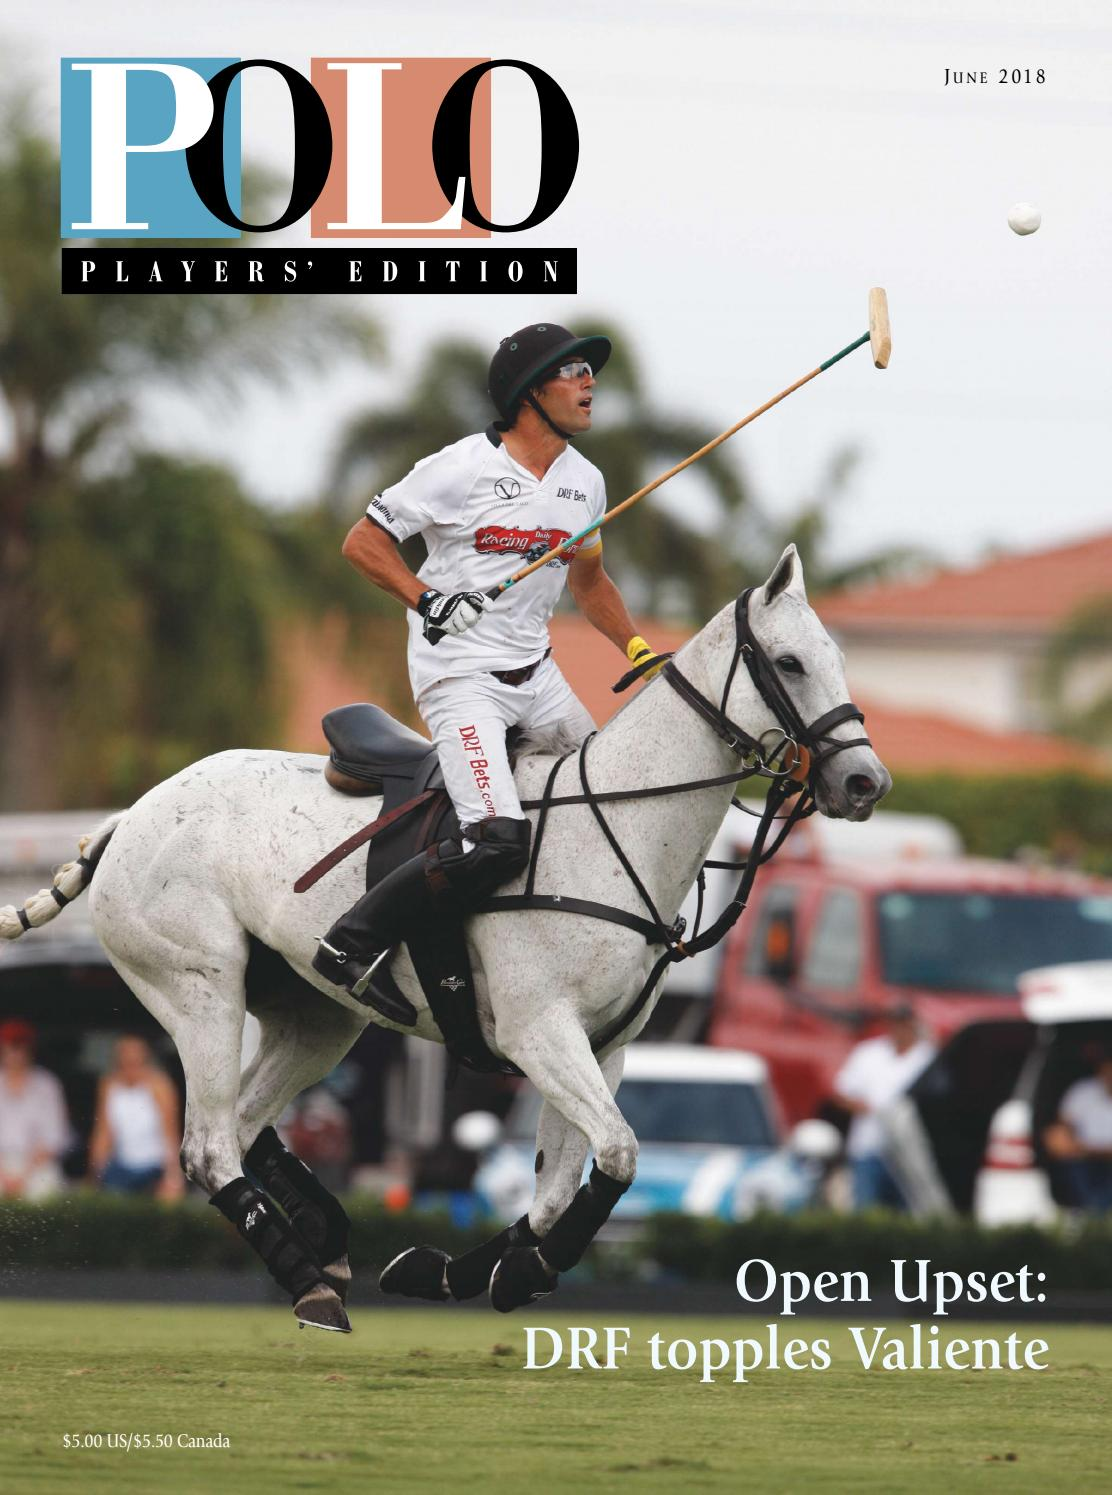 June 2018 Polo Players' Edition by United States Polo